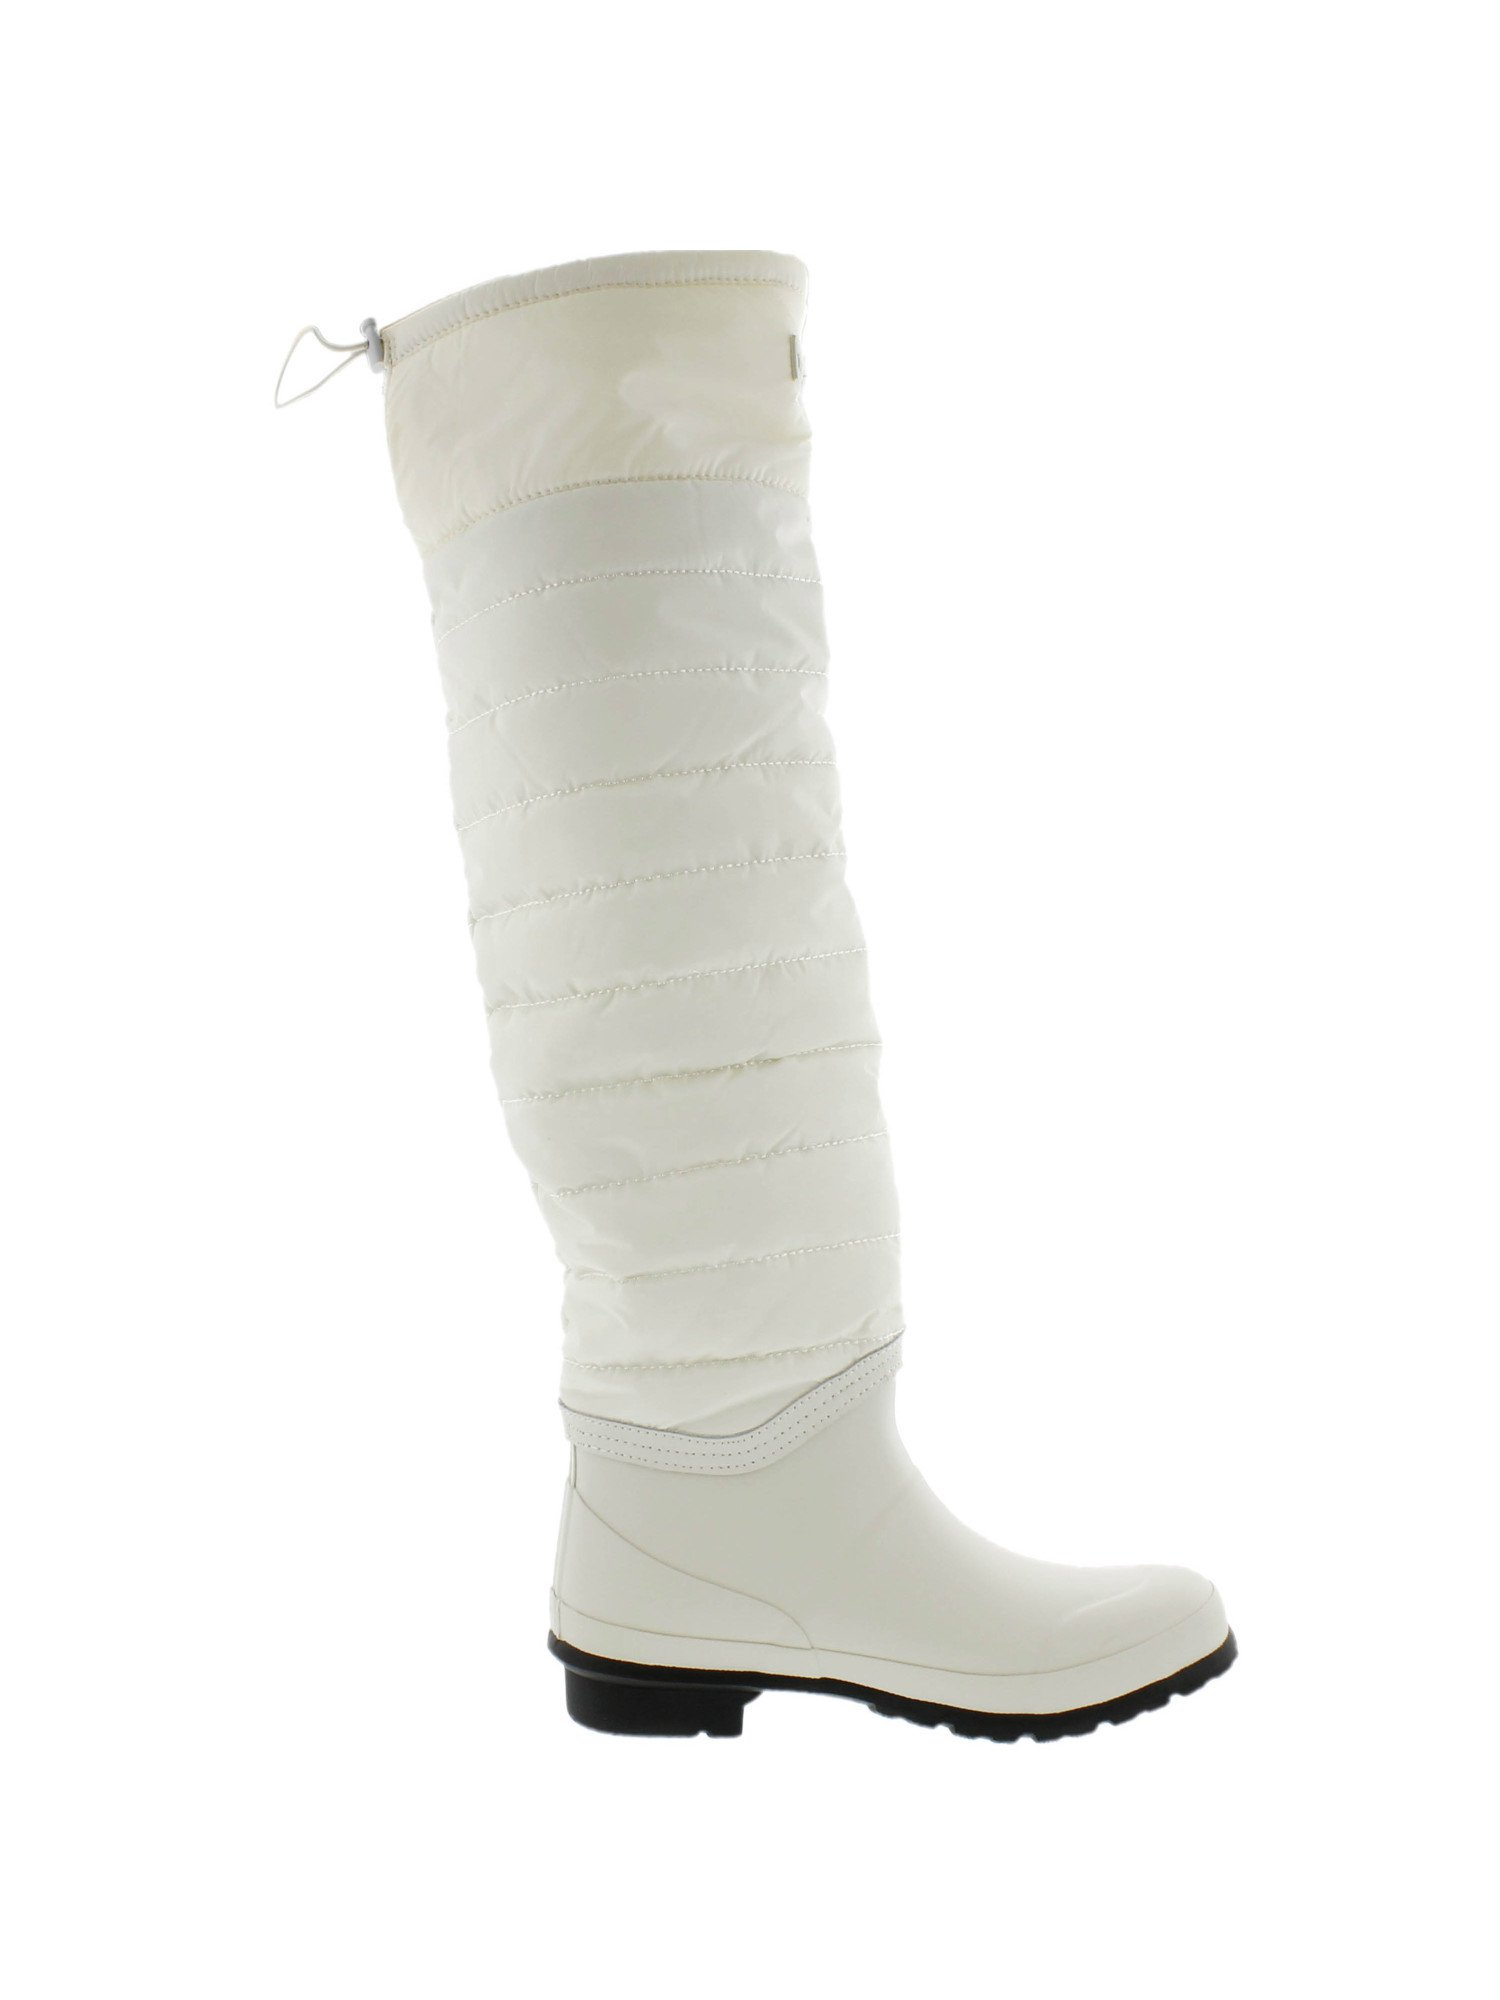 TRETORN Womens Harriet Rain Boot